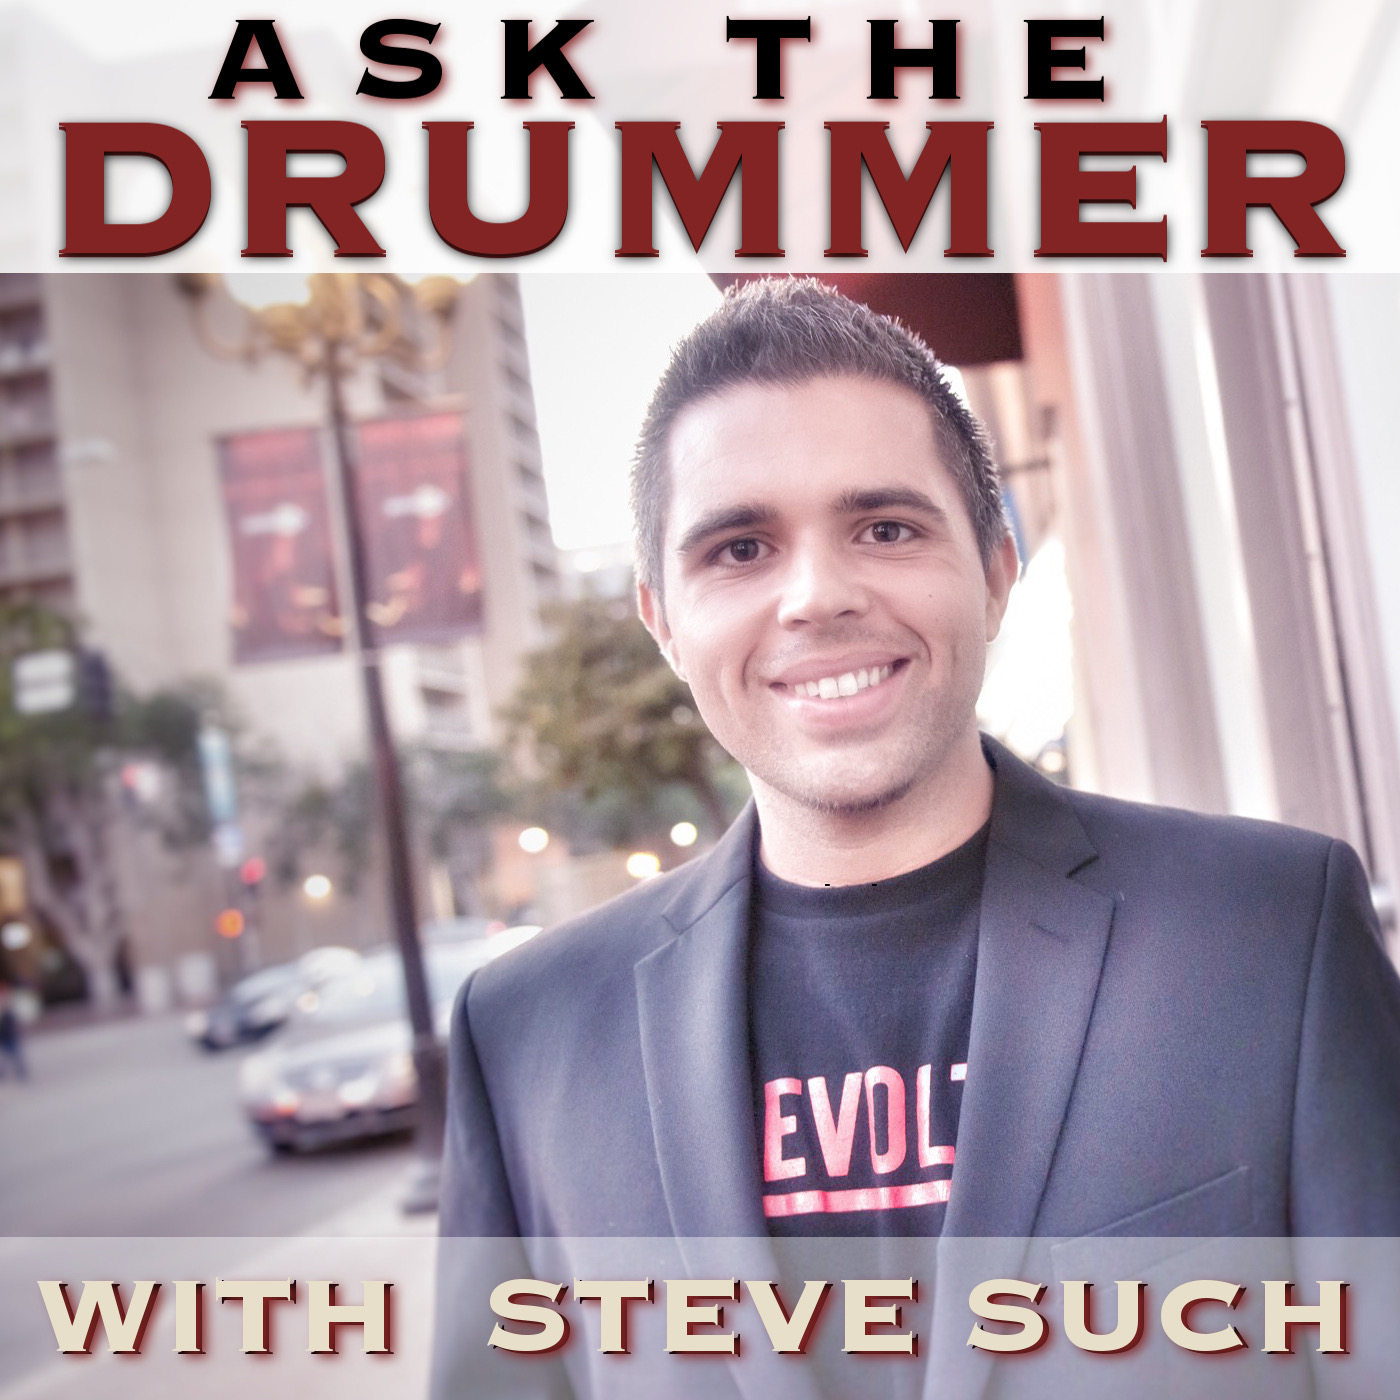 ask the drummer